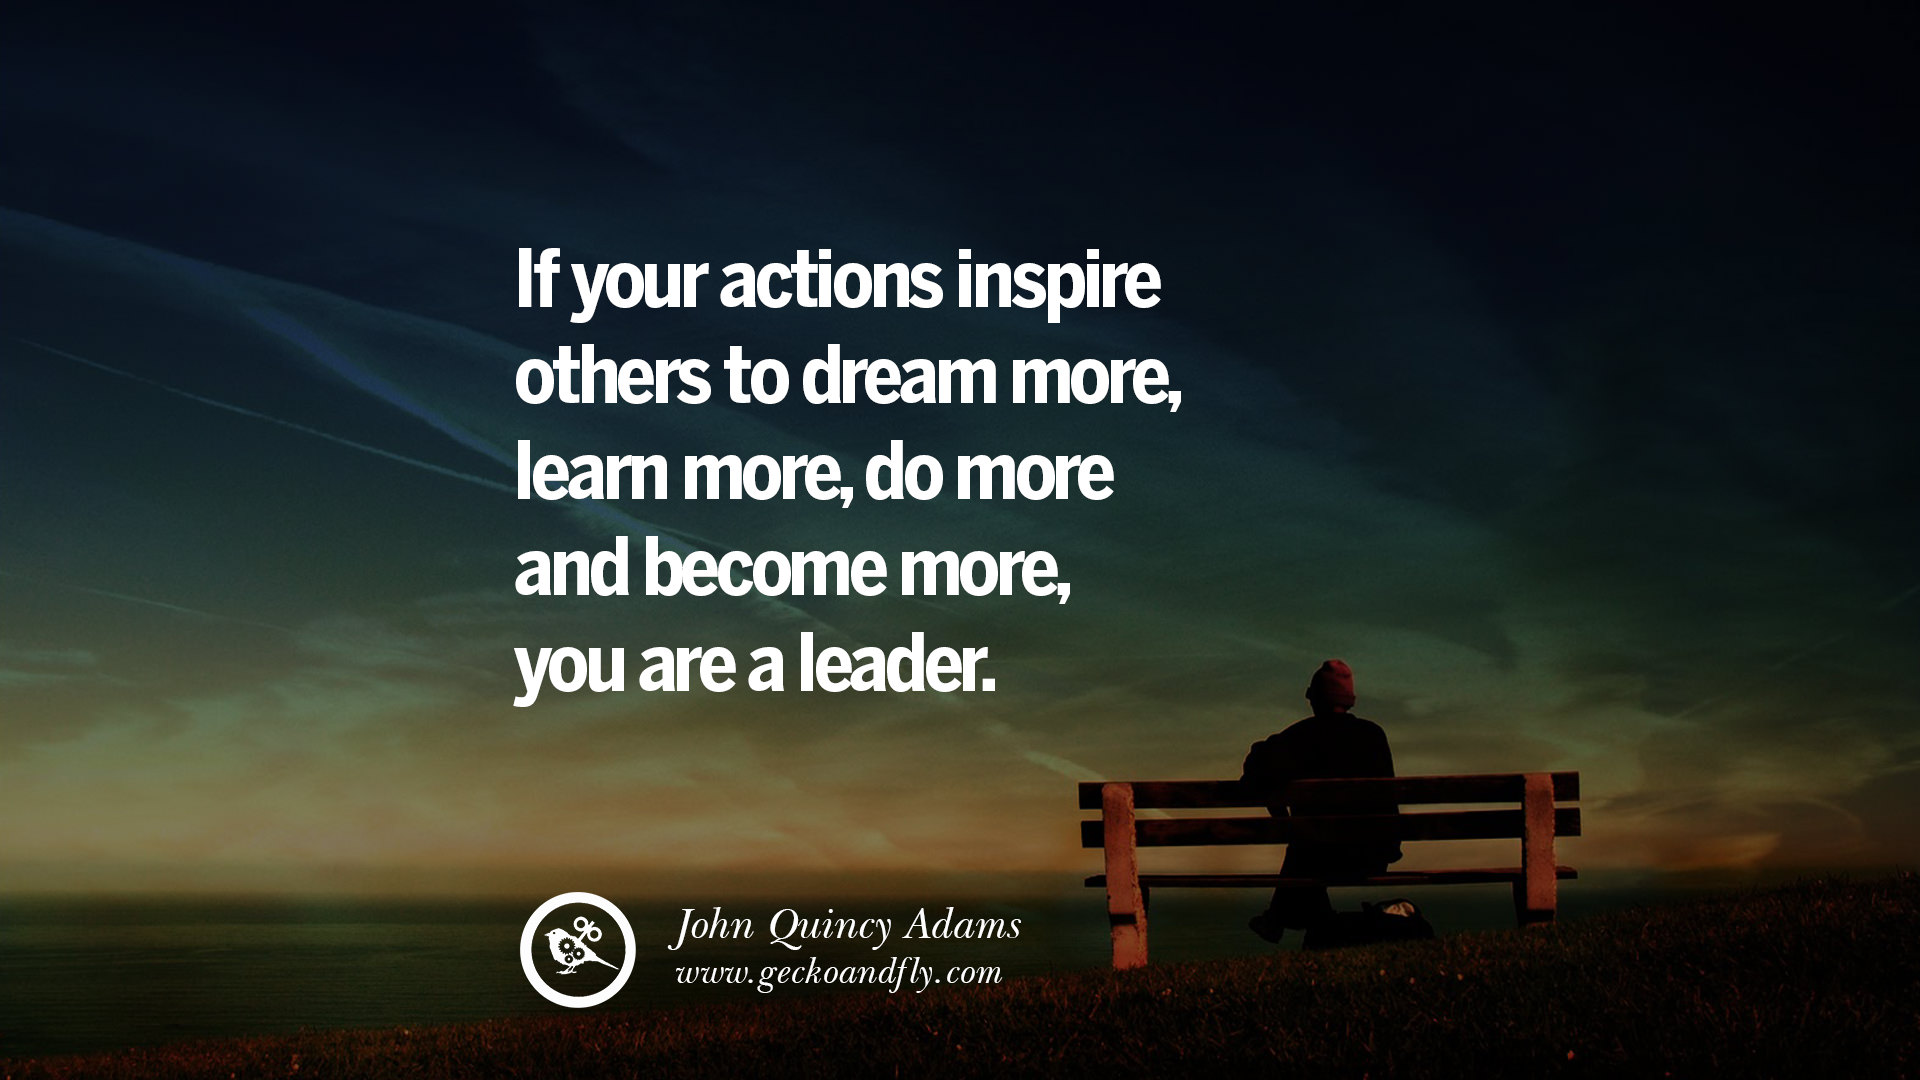 Quotes About Inspiring Others 18 Uplifting And Motivational Quotes On Management Leadership